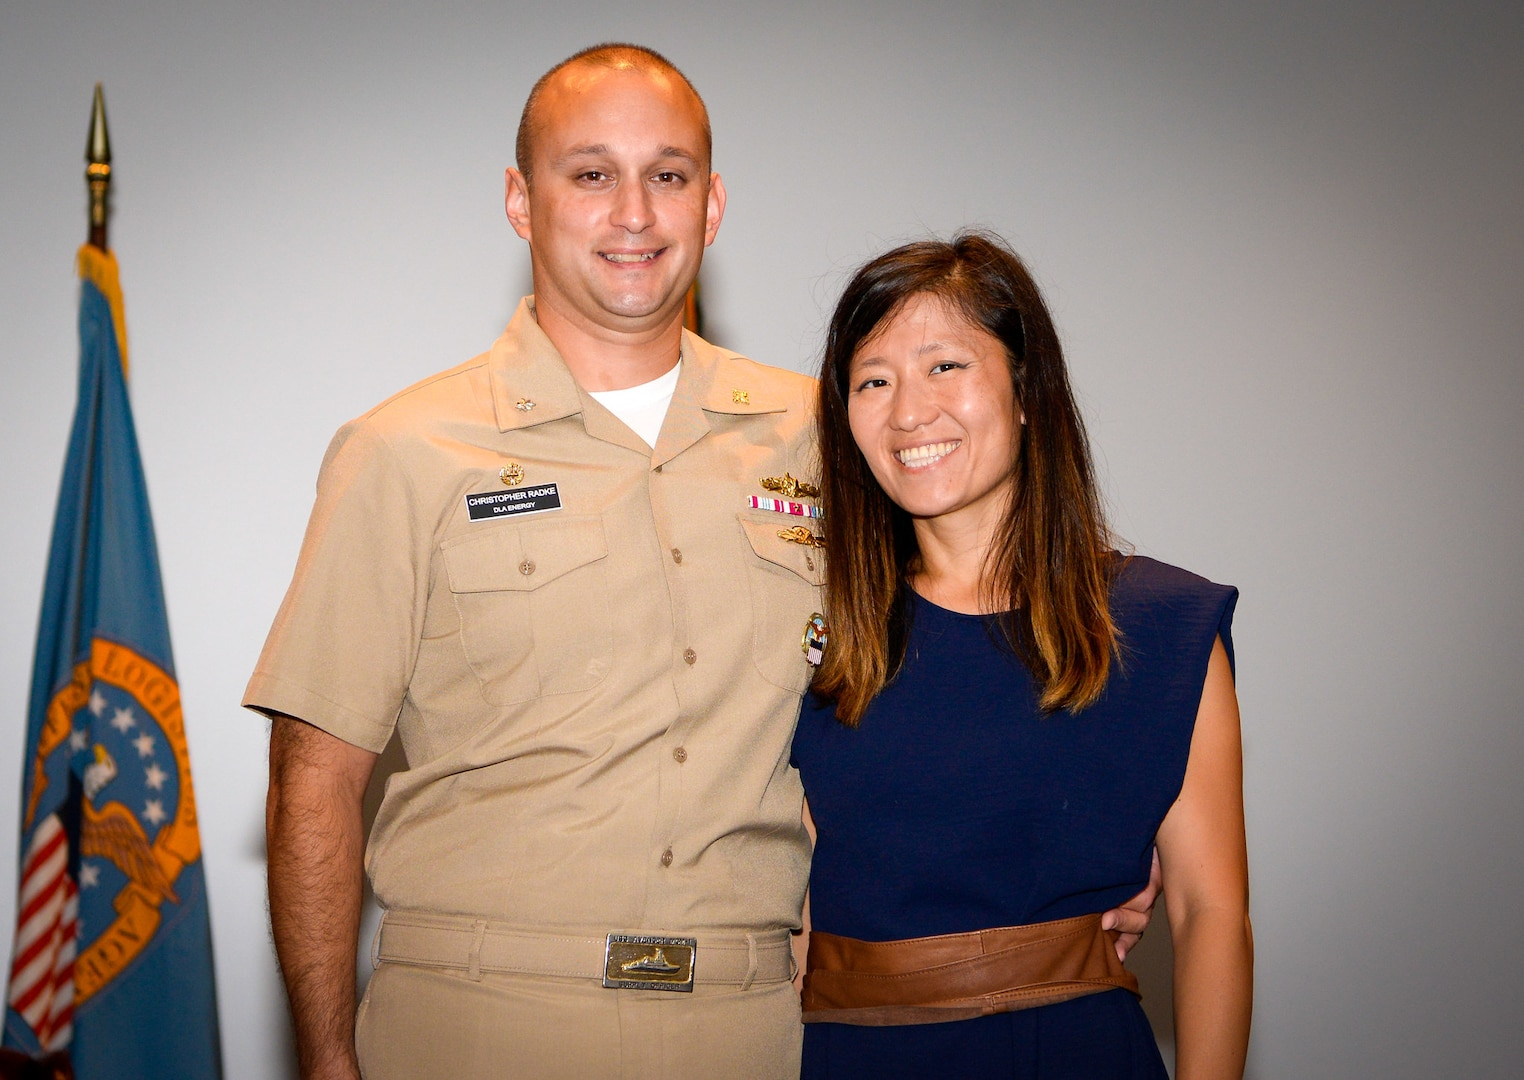 A Navy officer stands with his wife